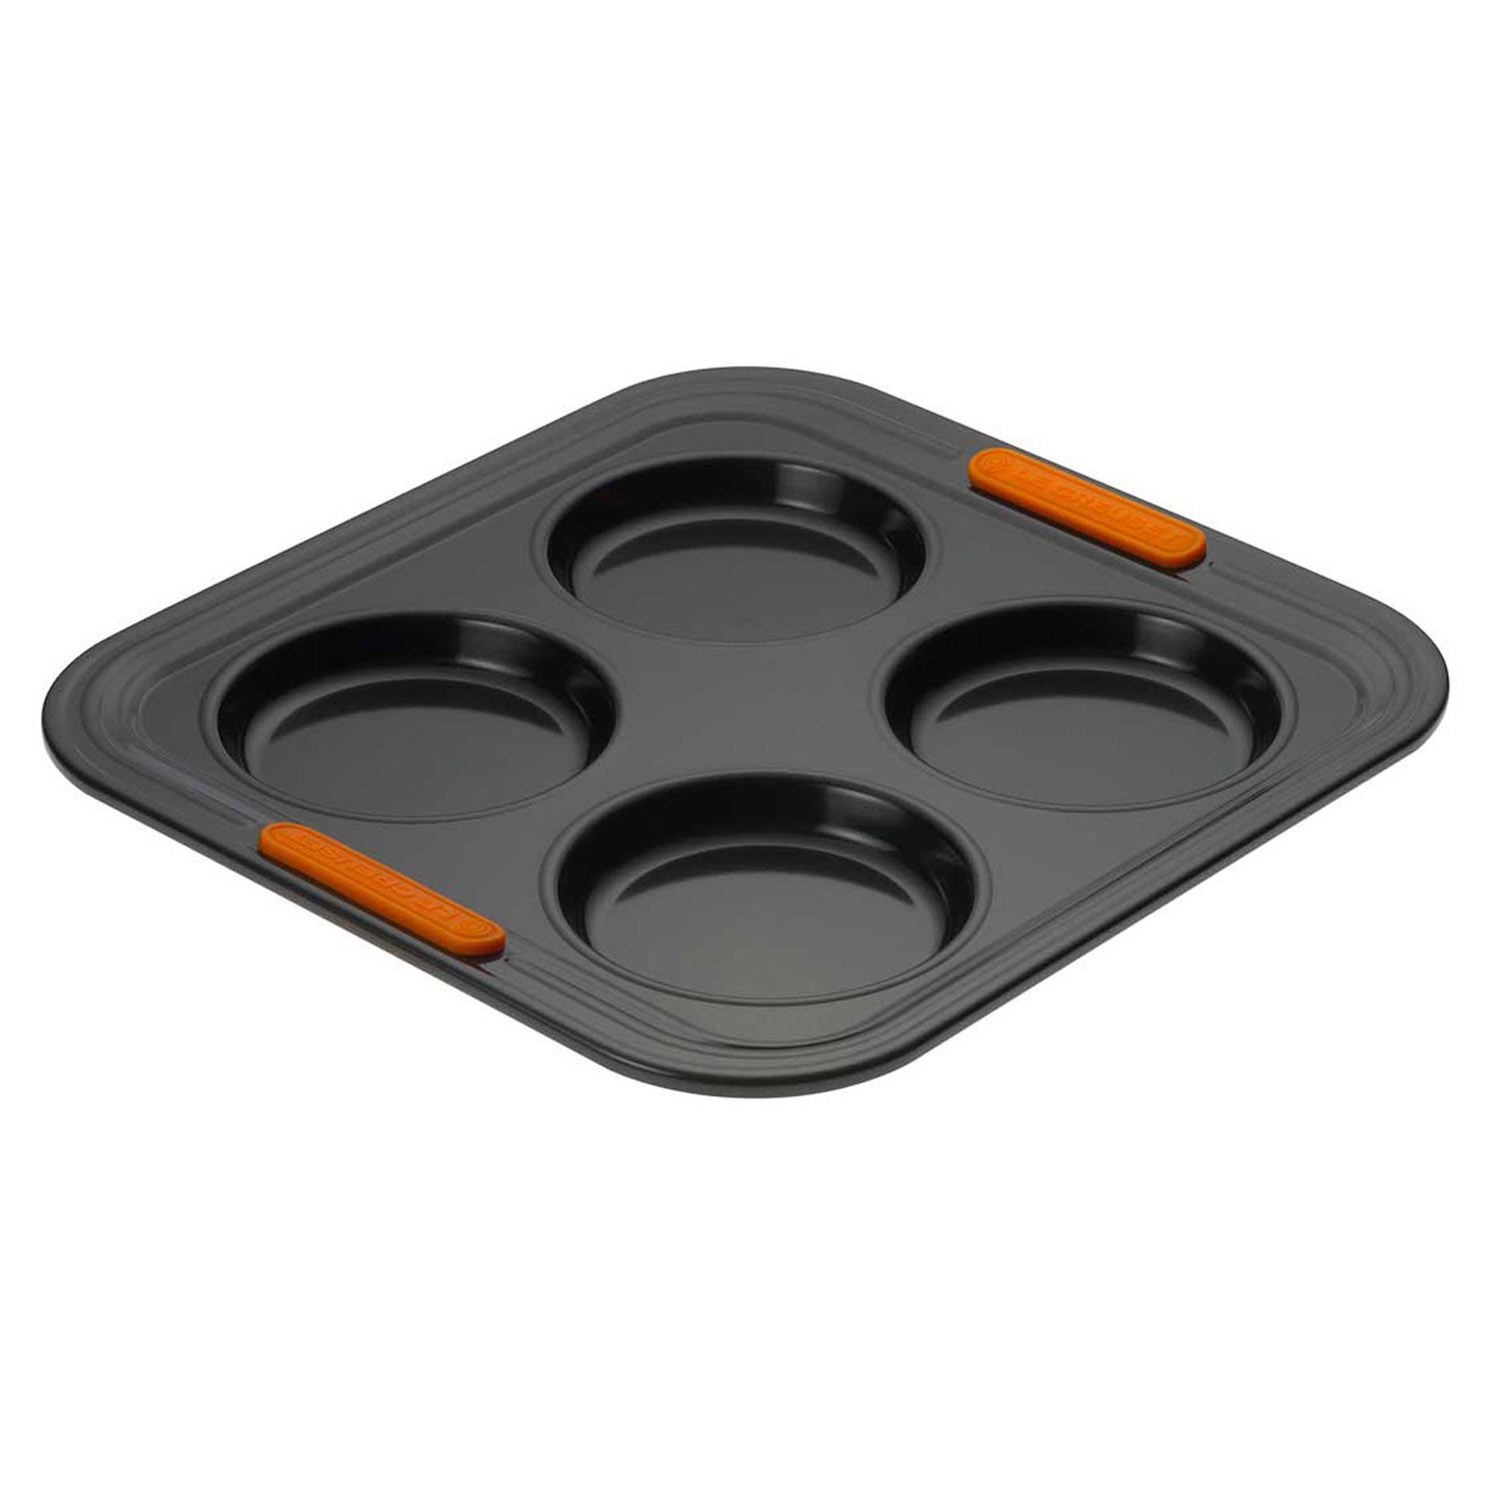 Image of Le Creuset 4 Cup Yorkshire Pudding Tray